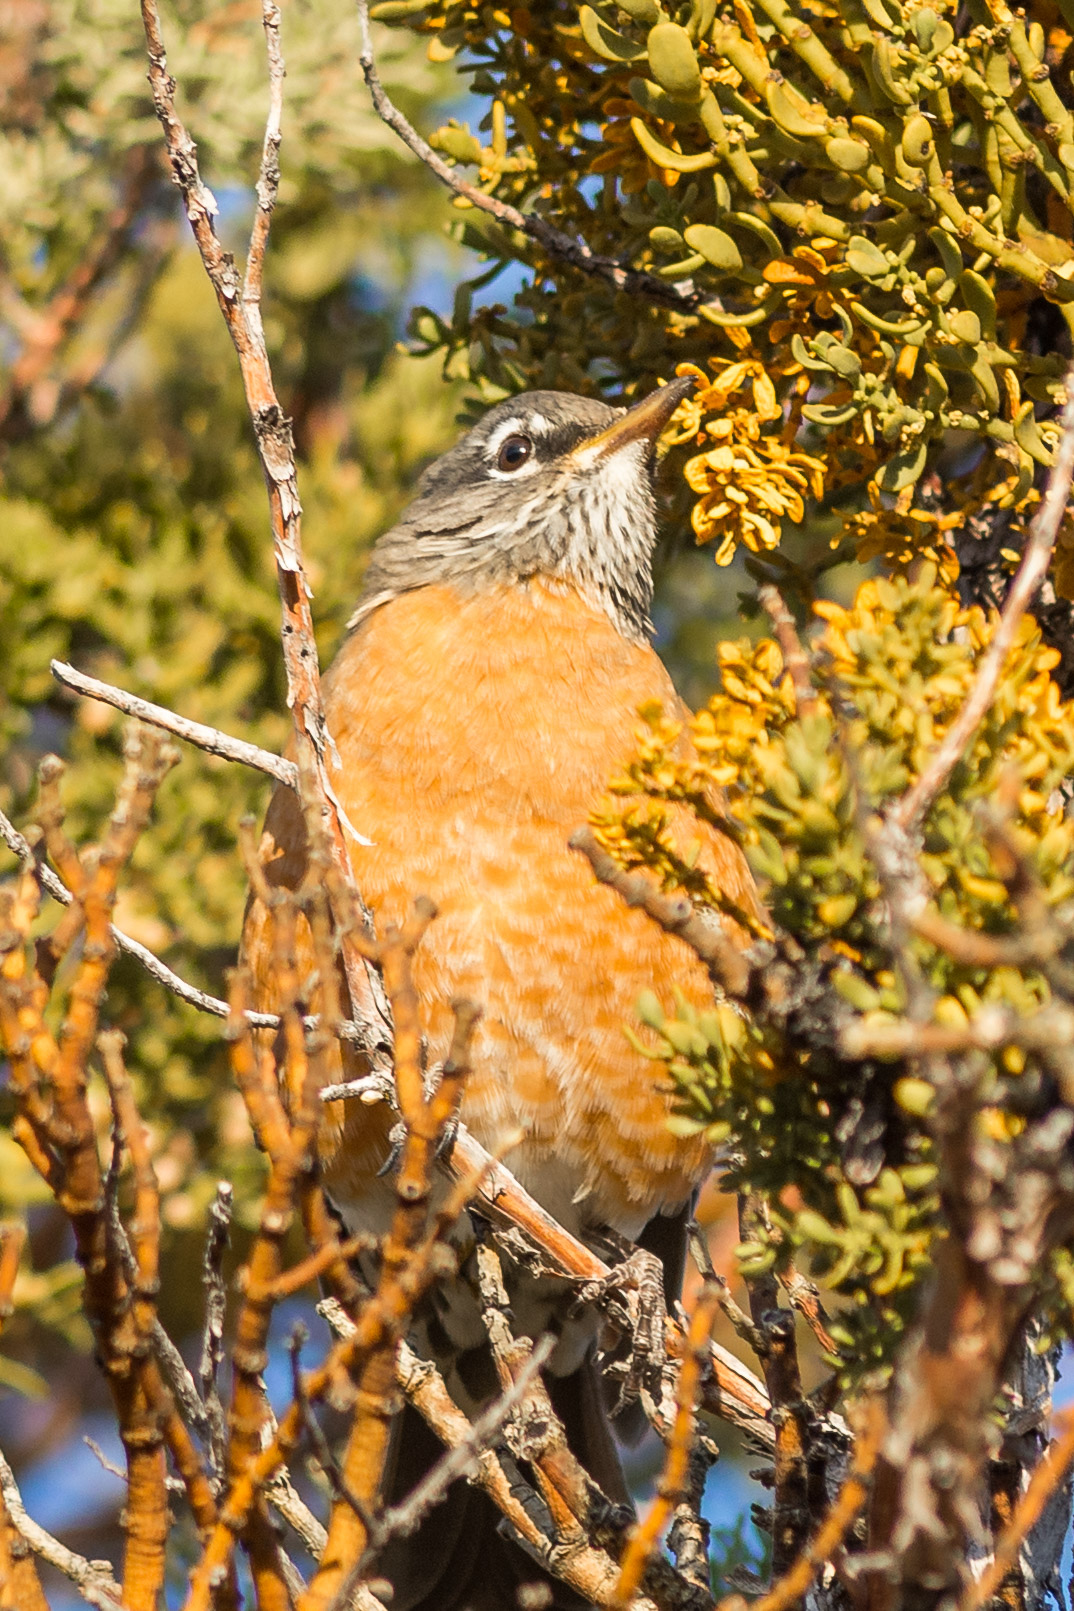 American Robin (Turdus migratorius)- Lava Beds NM, Siskiyou Co. (CA)  EQ: D7200, 300mm f/2.8  Taken: 10-2-2016 at 7:48   Settings: 450 mm (35mm eqiv), 1/1000s, f/3.5, ISO250, +1/3EV  Conditions: Sunny